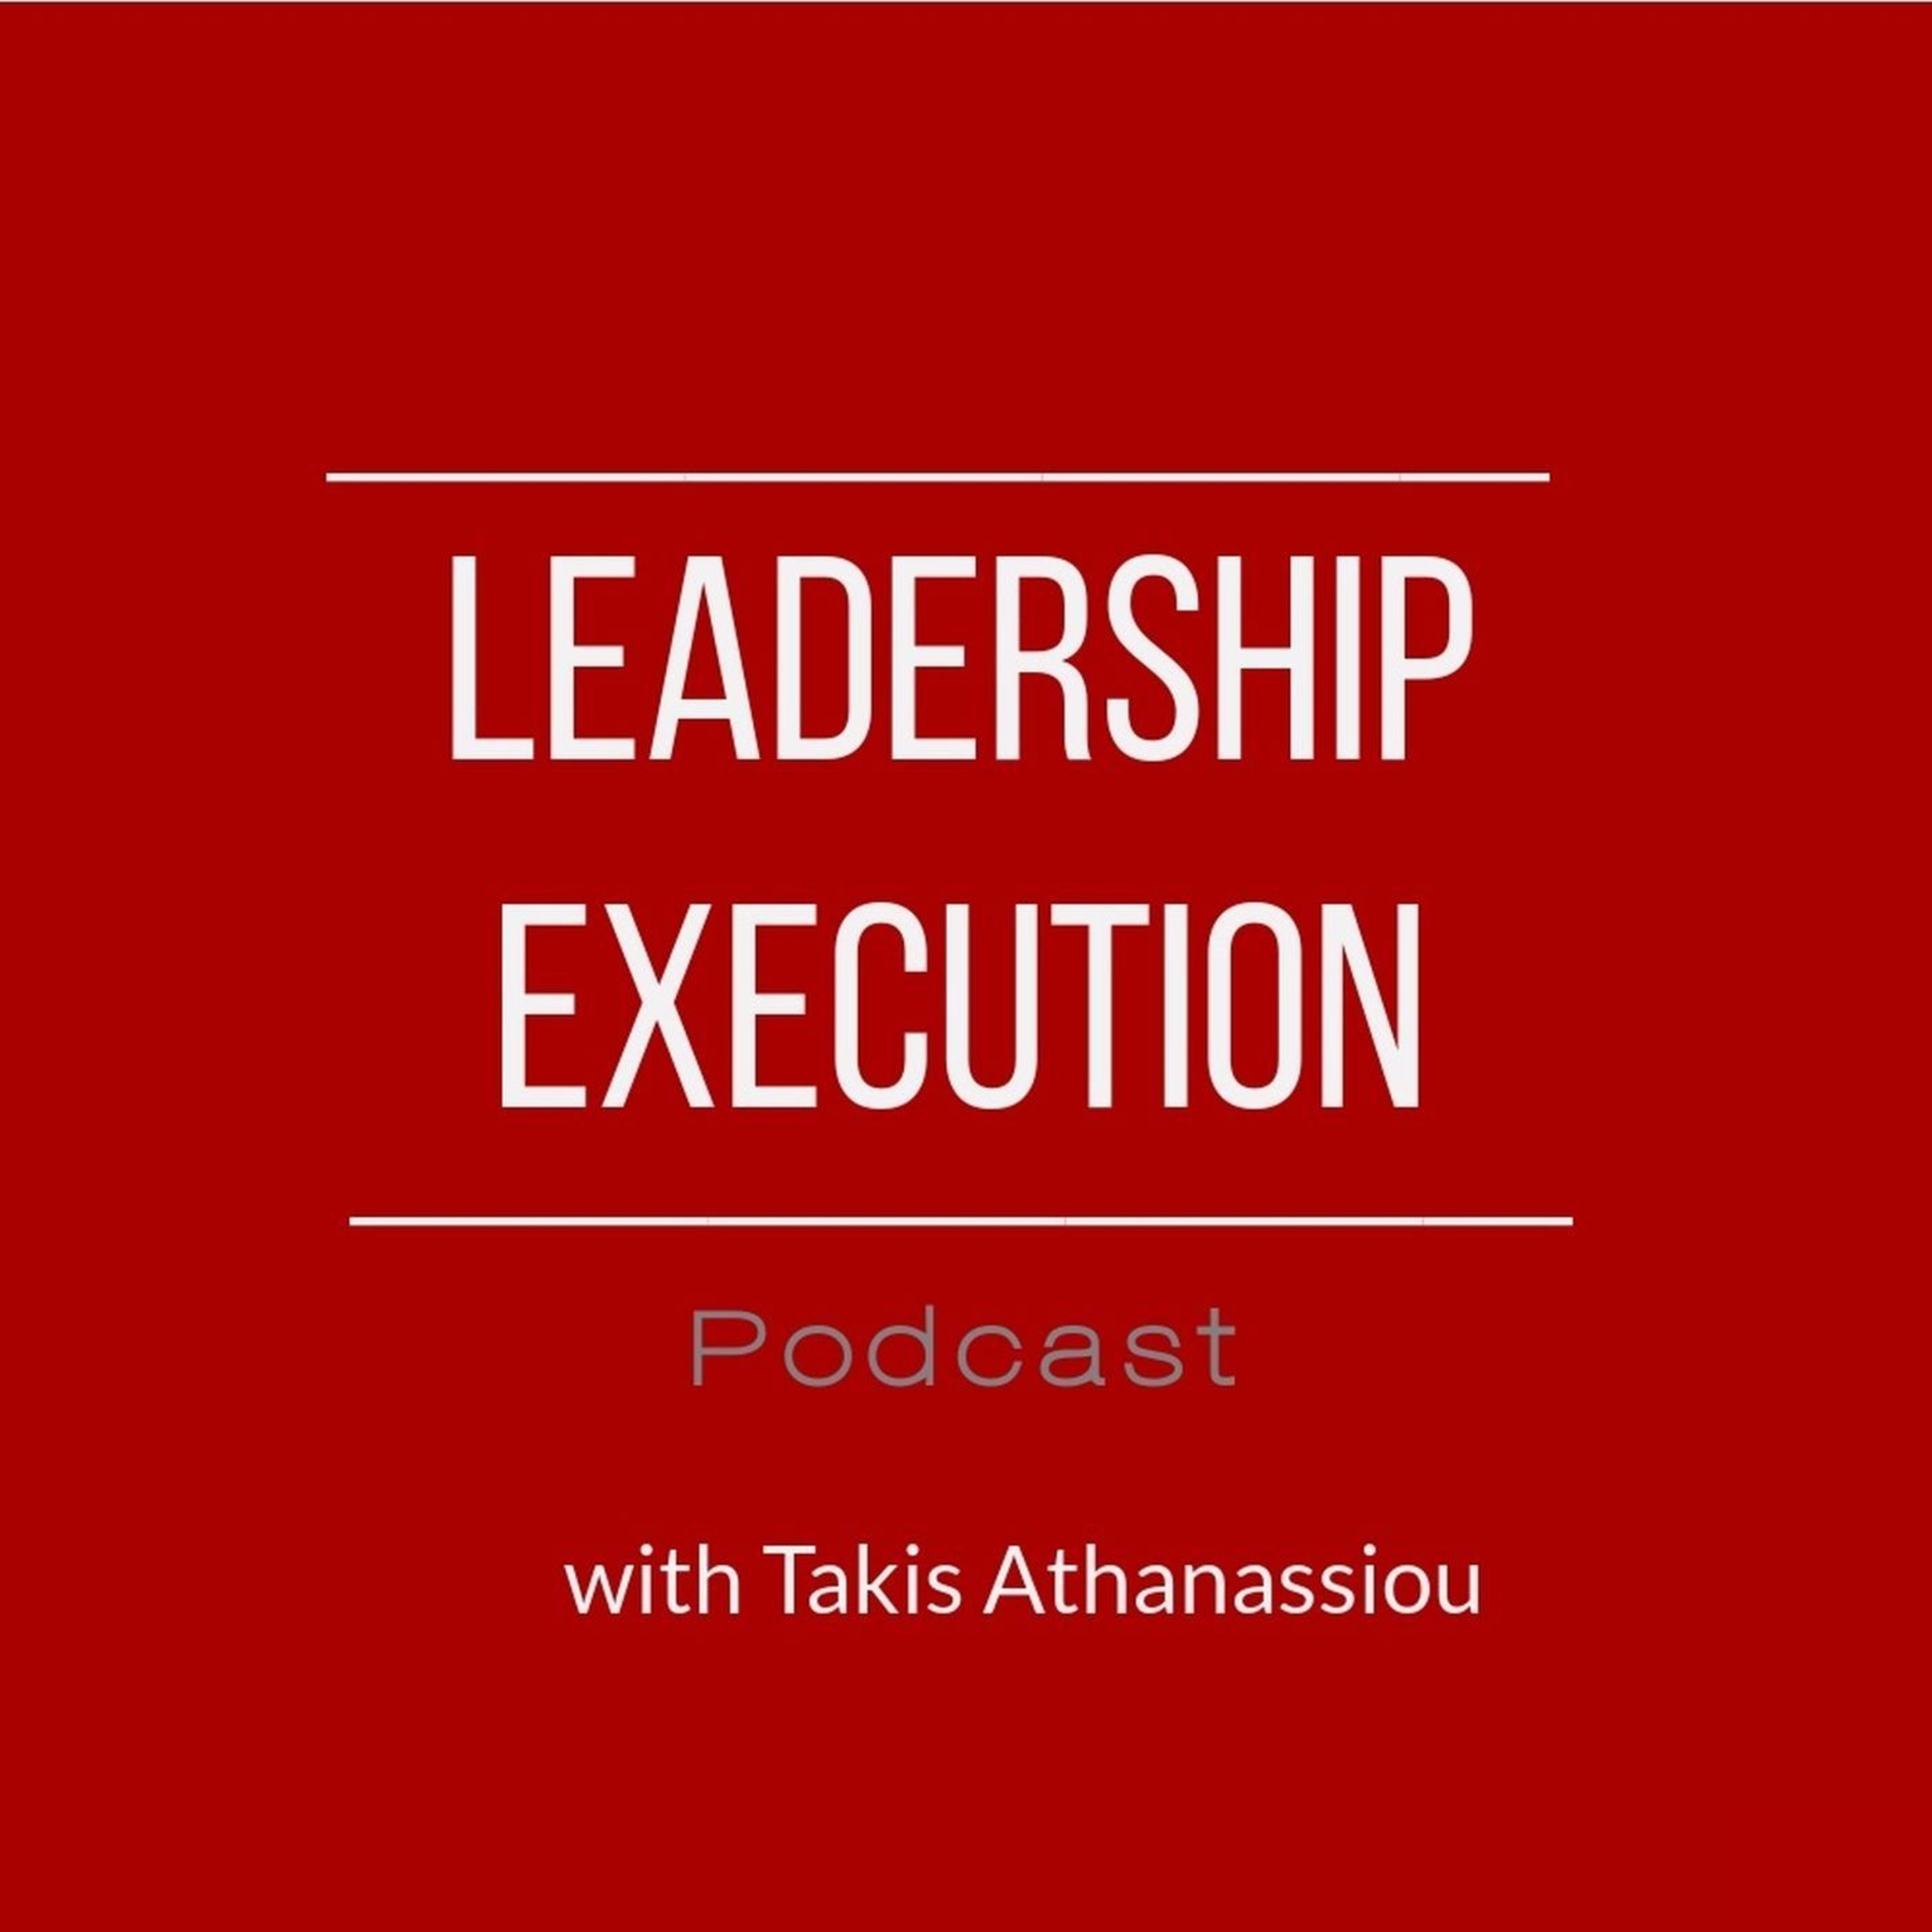 Leadership Execution Podcast